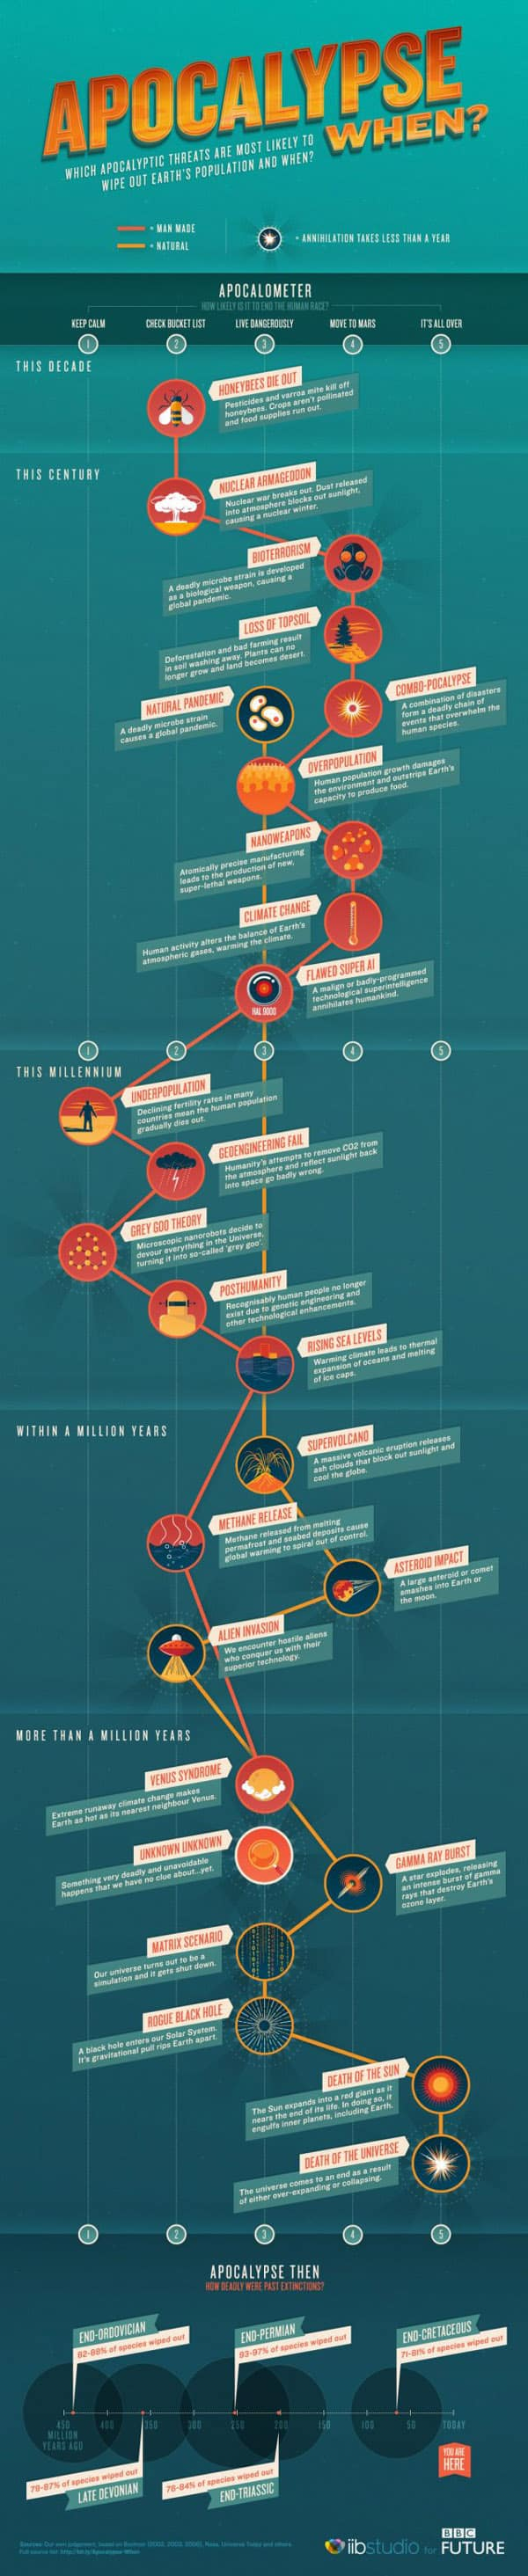 long form infographic goes far down the page